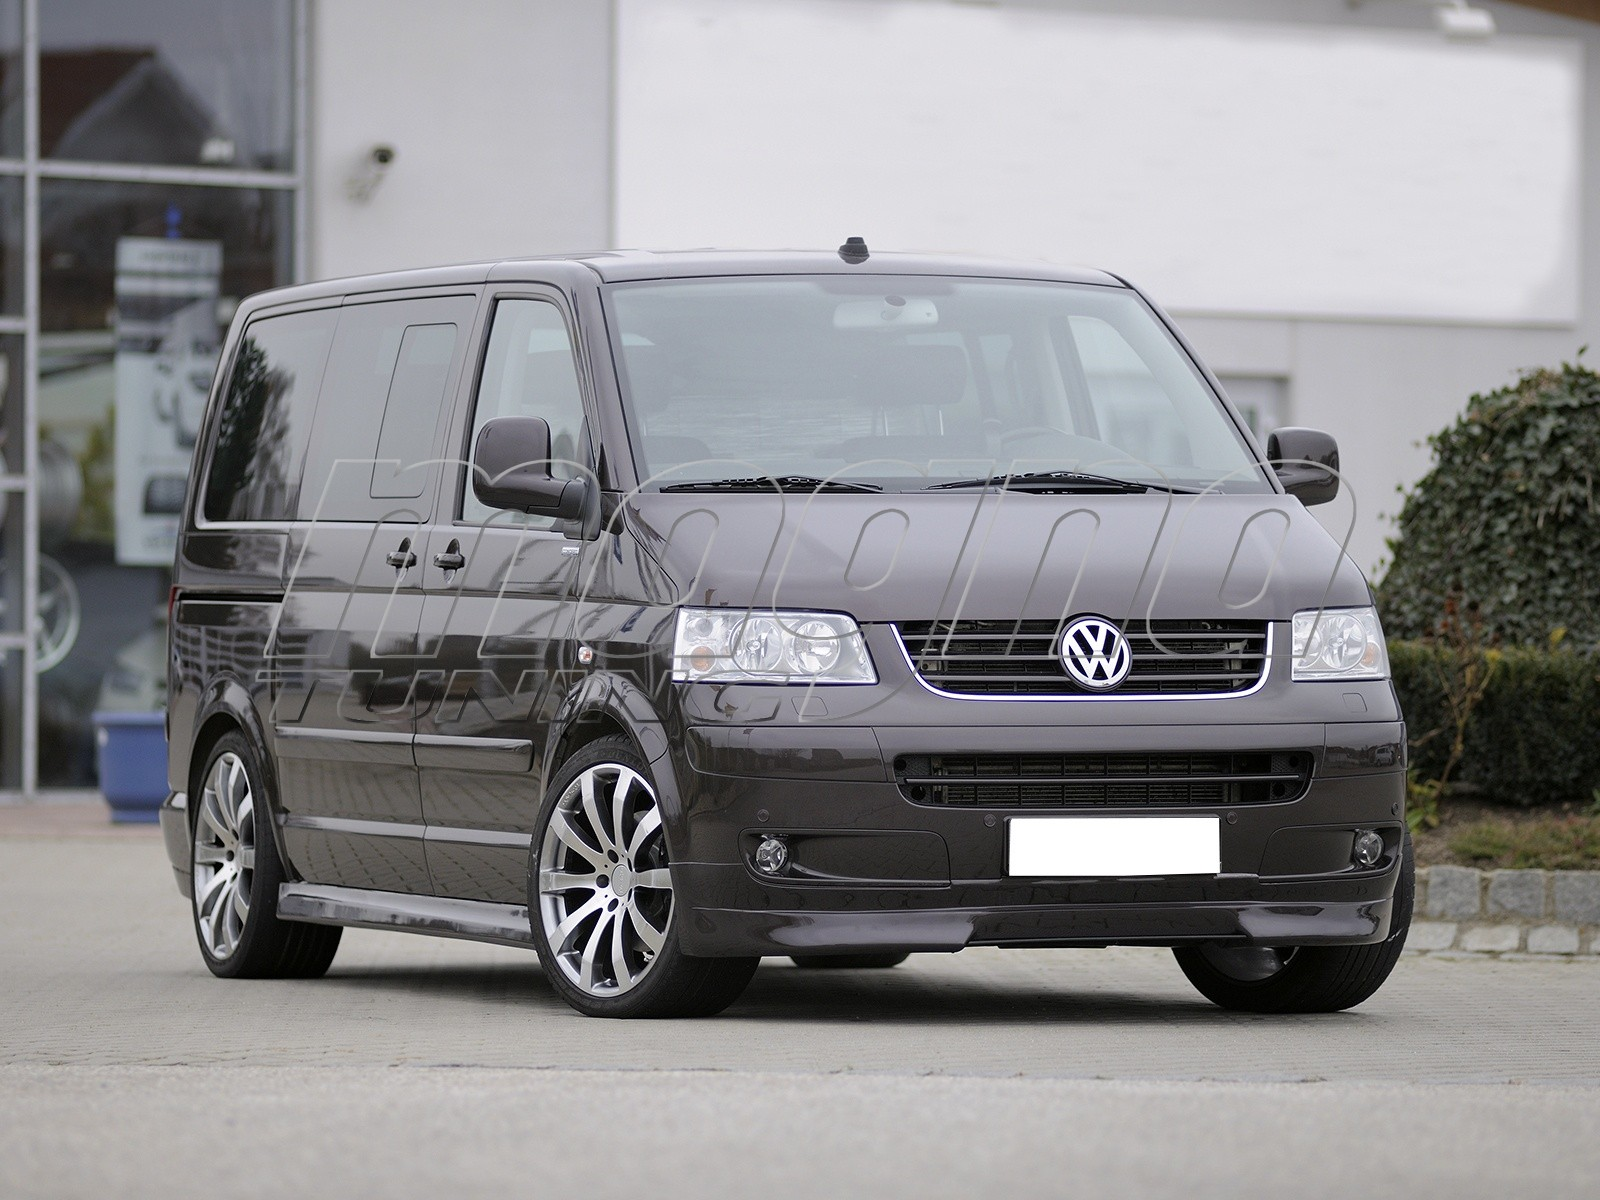 VW Transporter T5 Recto Body Kit on vw cabrio 3 5